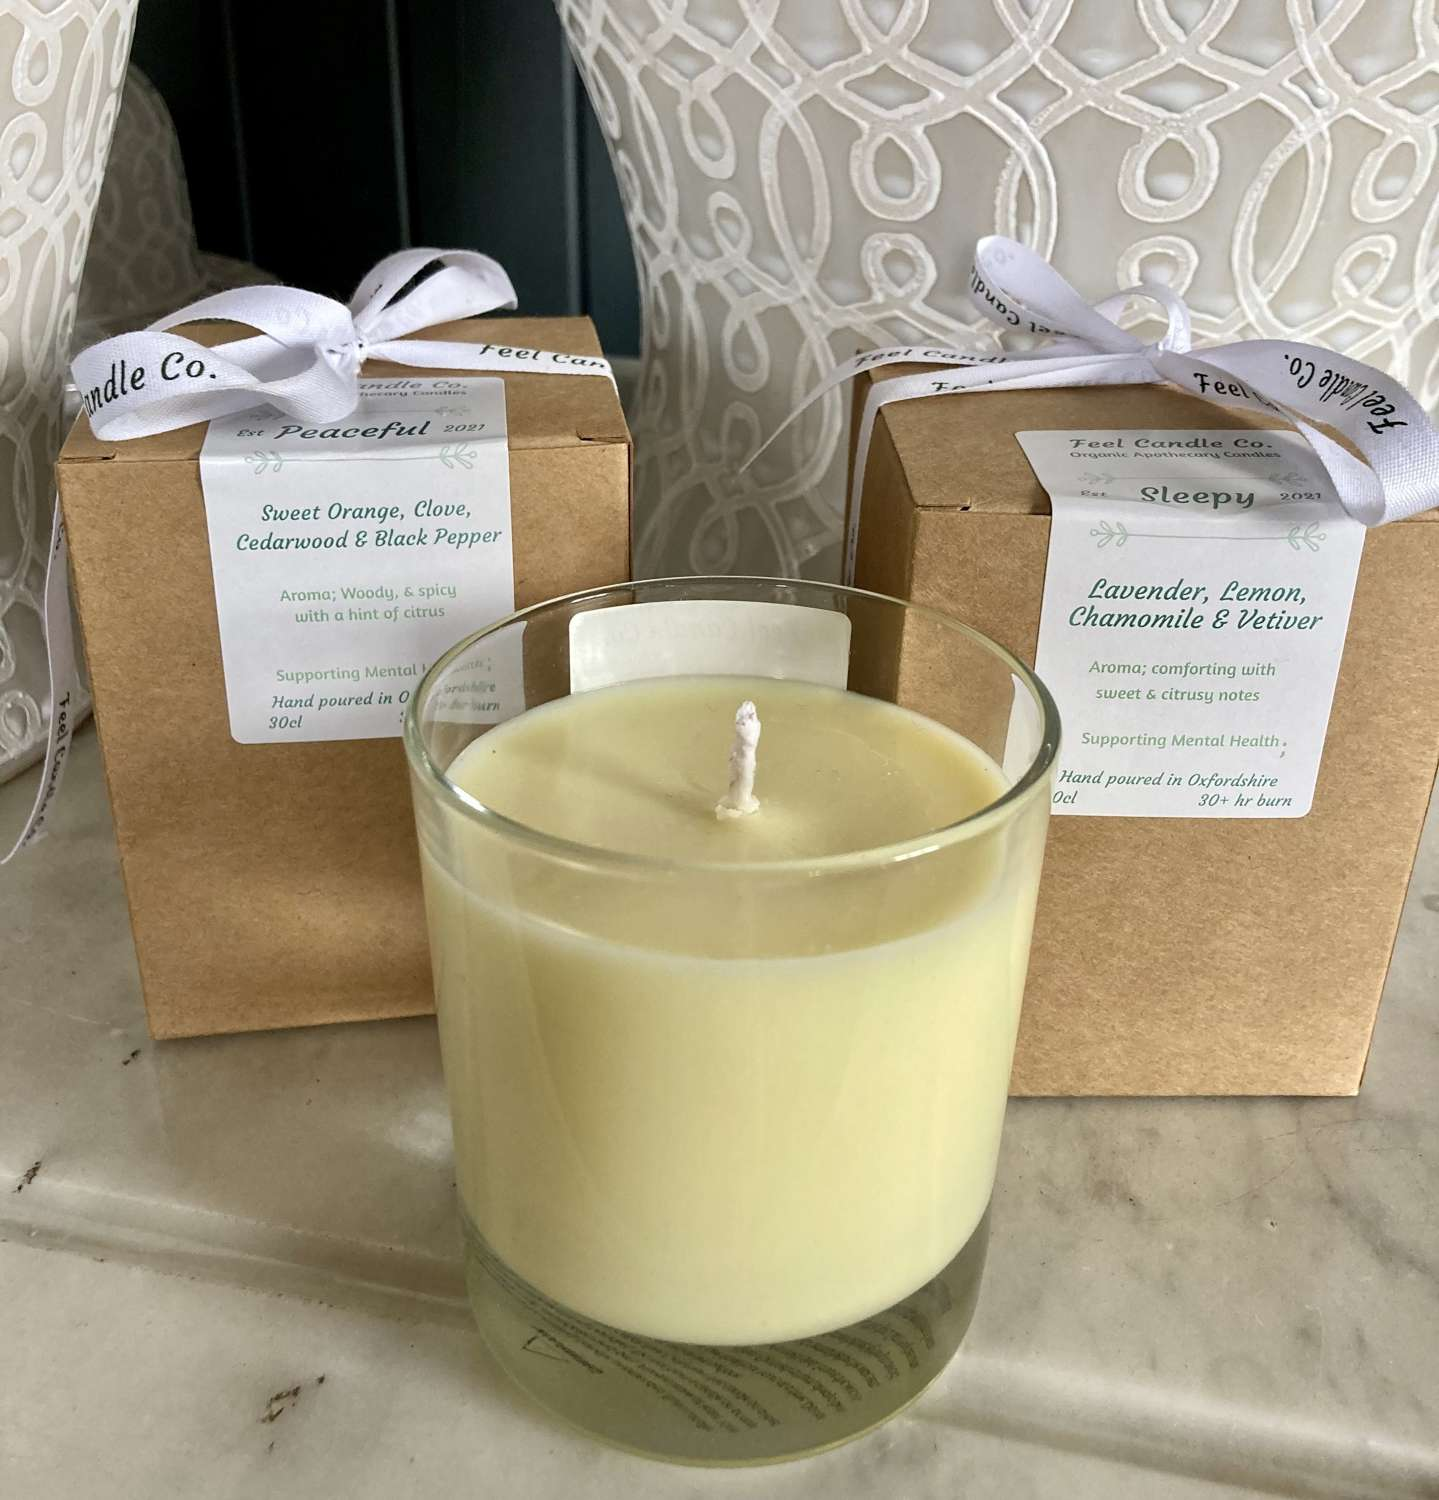 Feel Candle Co Aromatherapy Candles